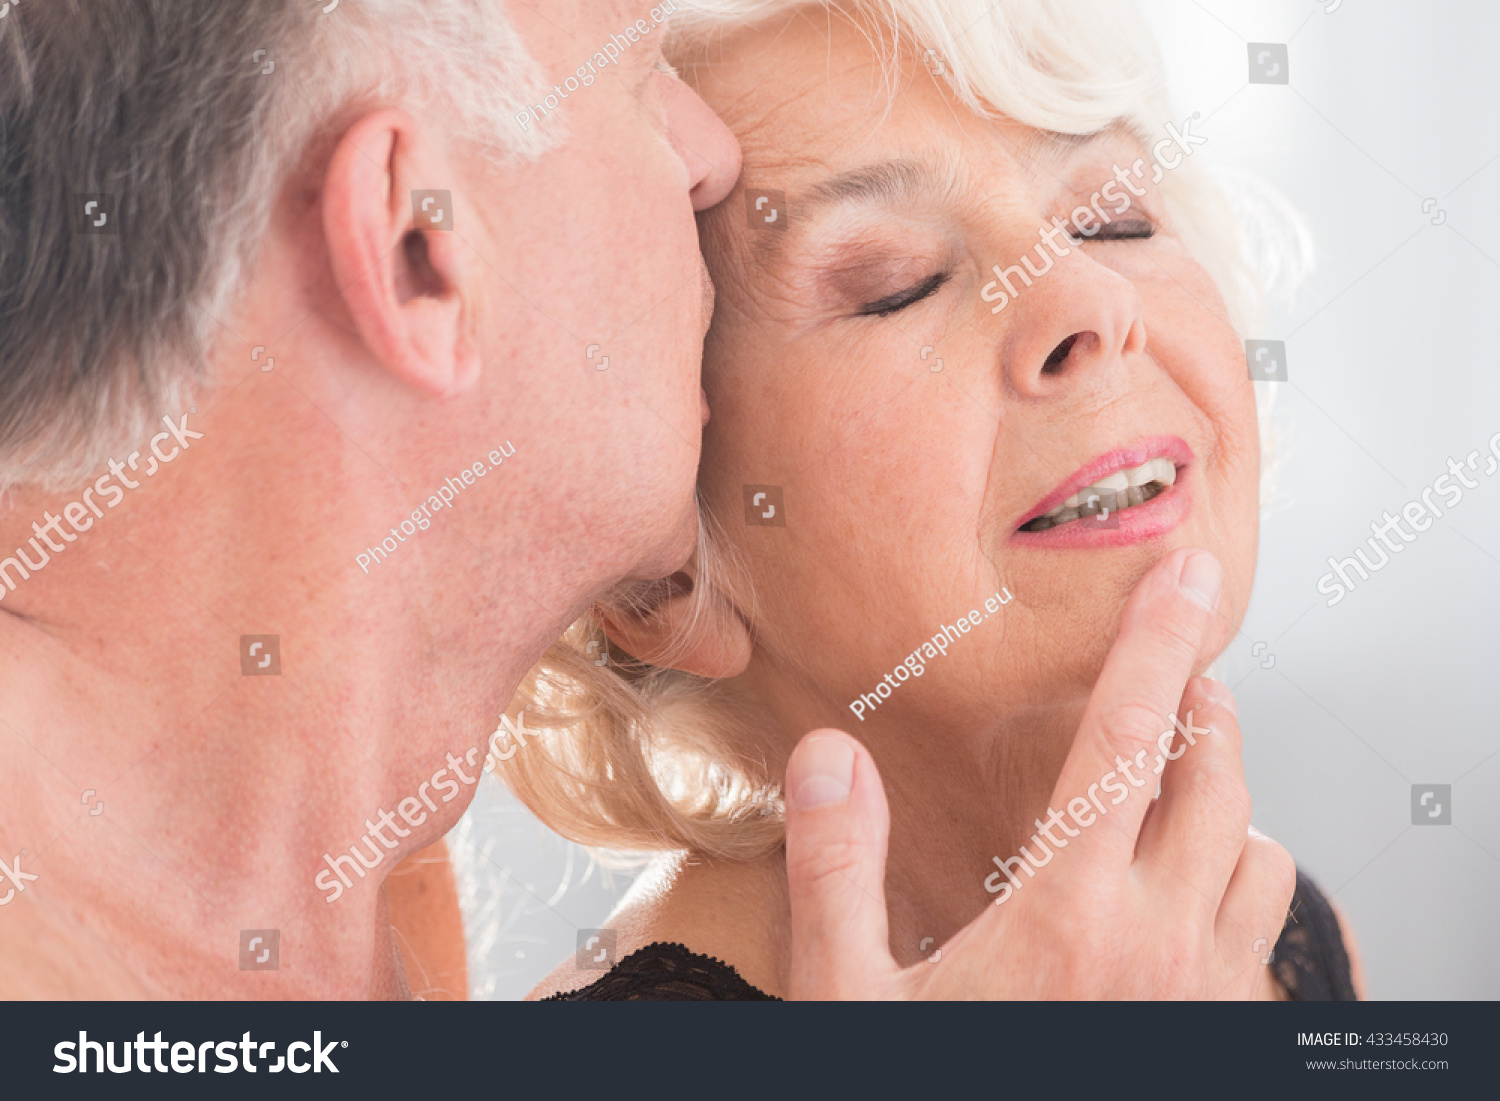 marriage sex intimacy